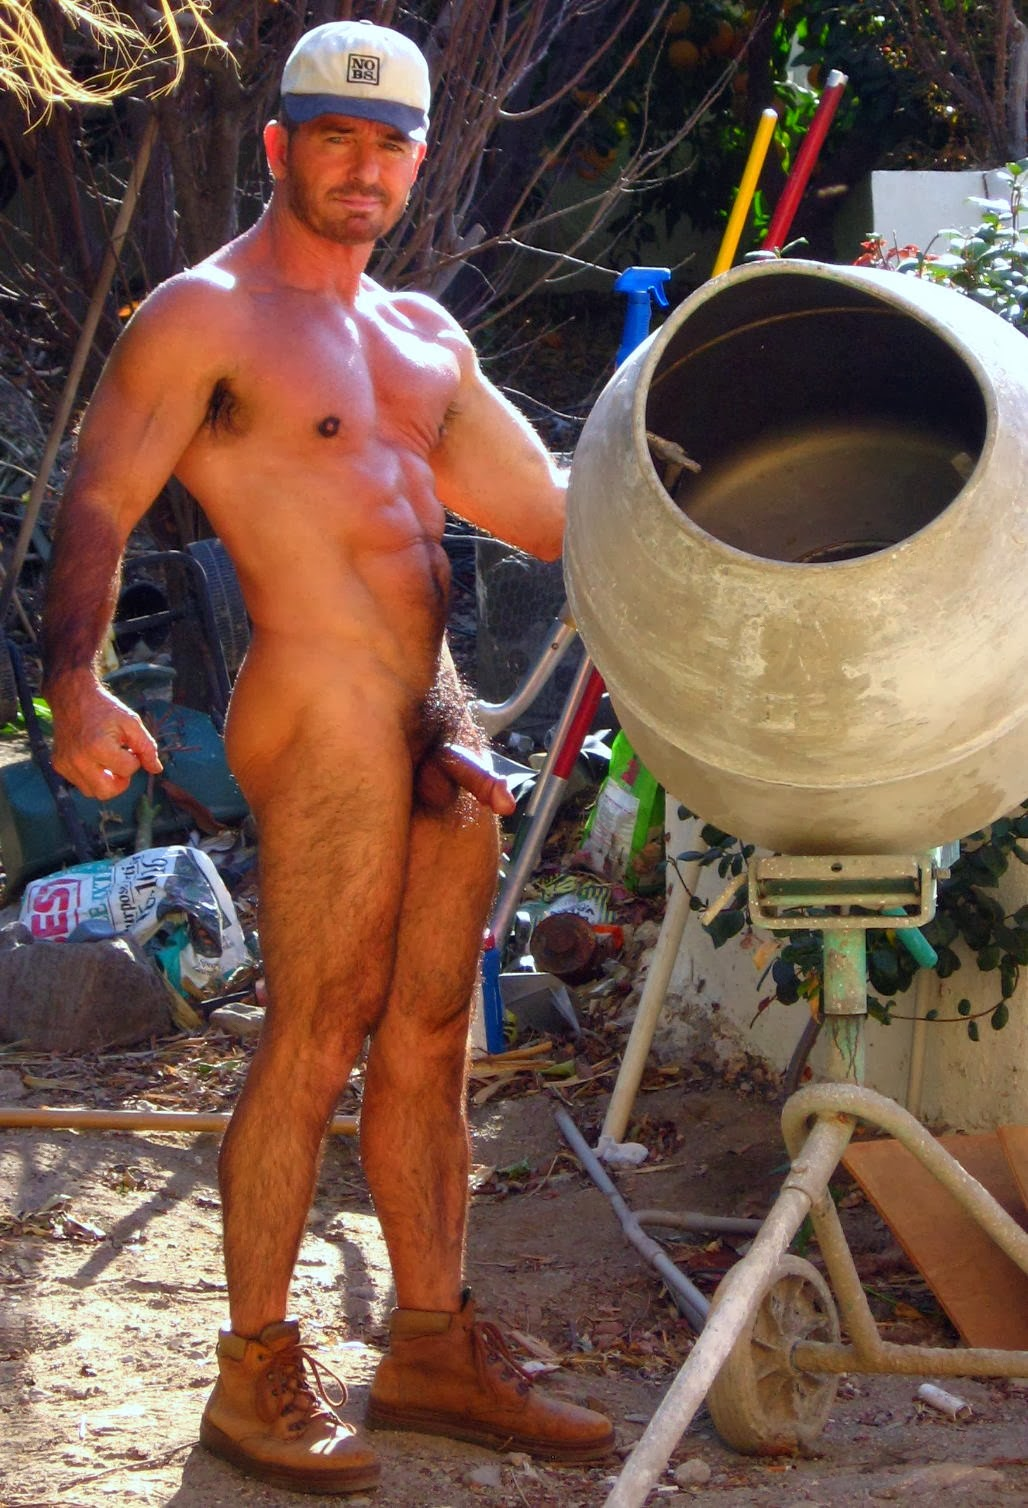 Masculine nude construction workers, cute innocent virgin pussy